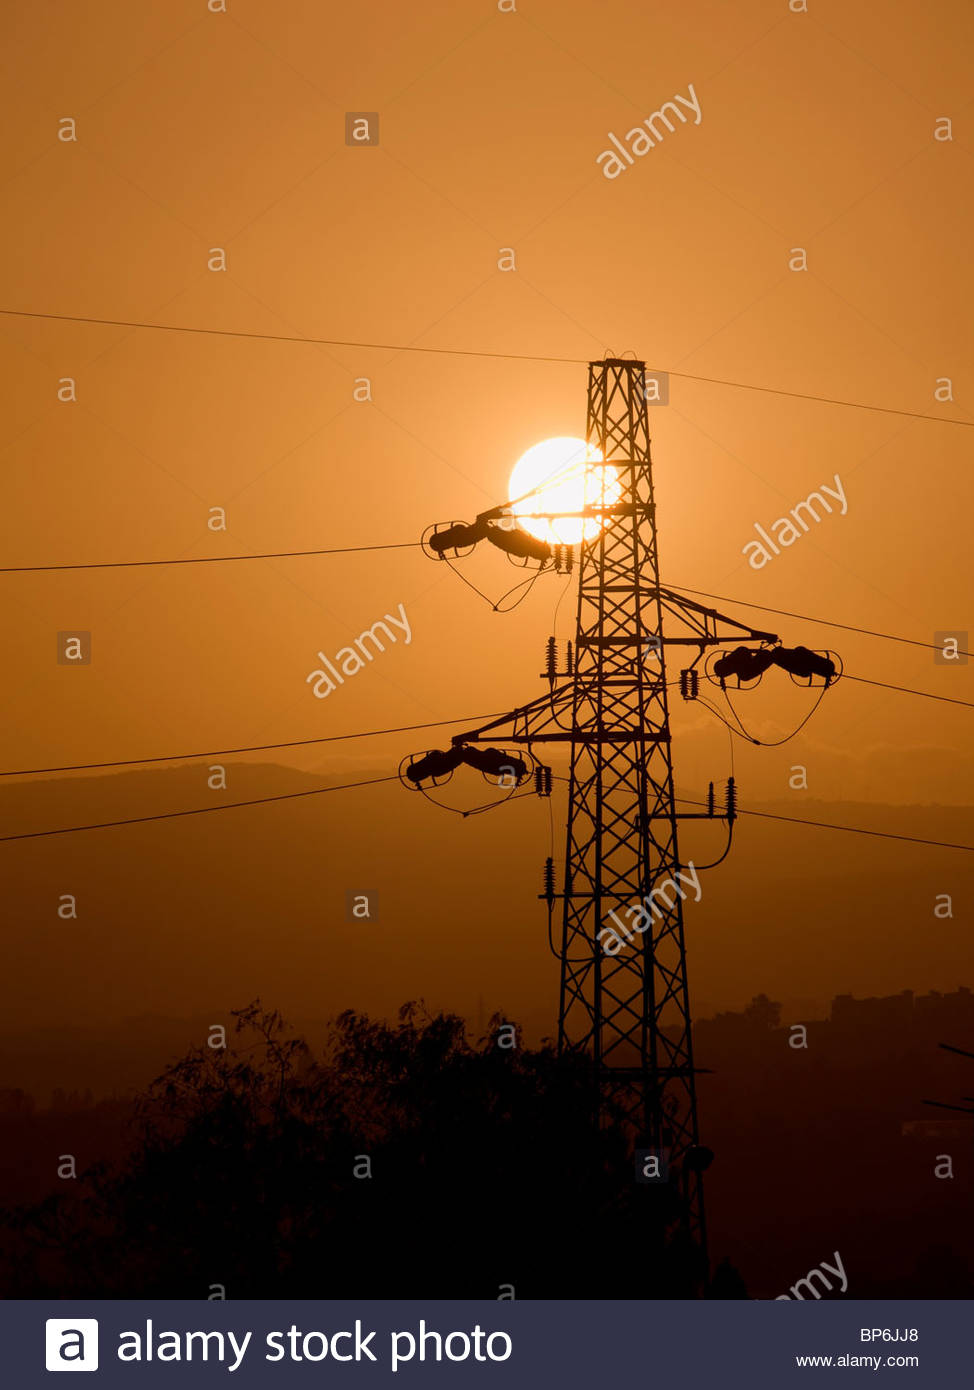 Electricity pylon silhouetted against sky at sunset, Sicily, Italy - Stock Image